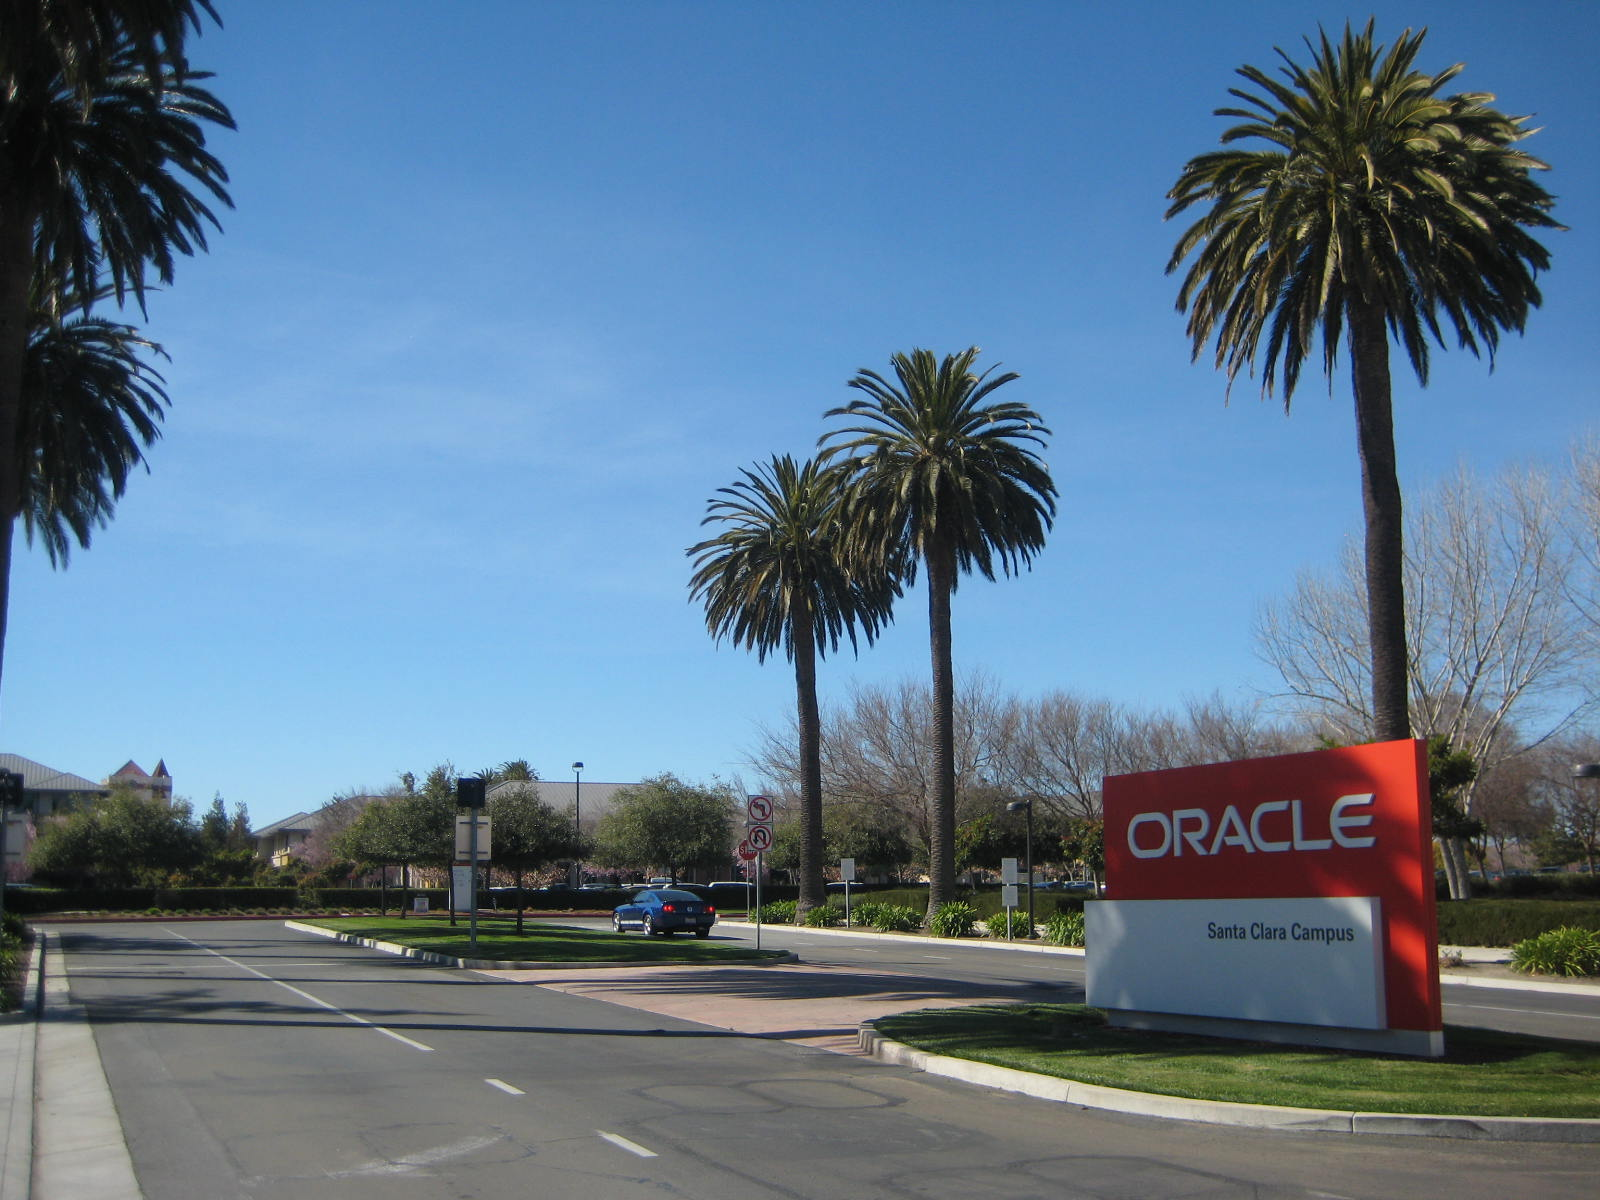 Full Oracle Great Circle